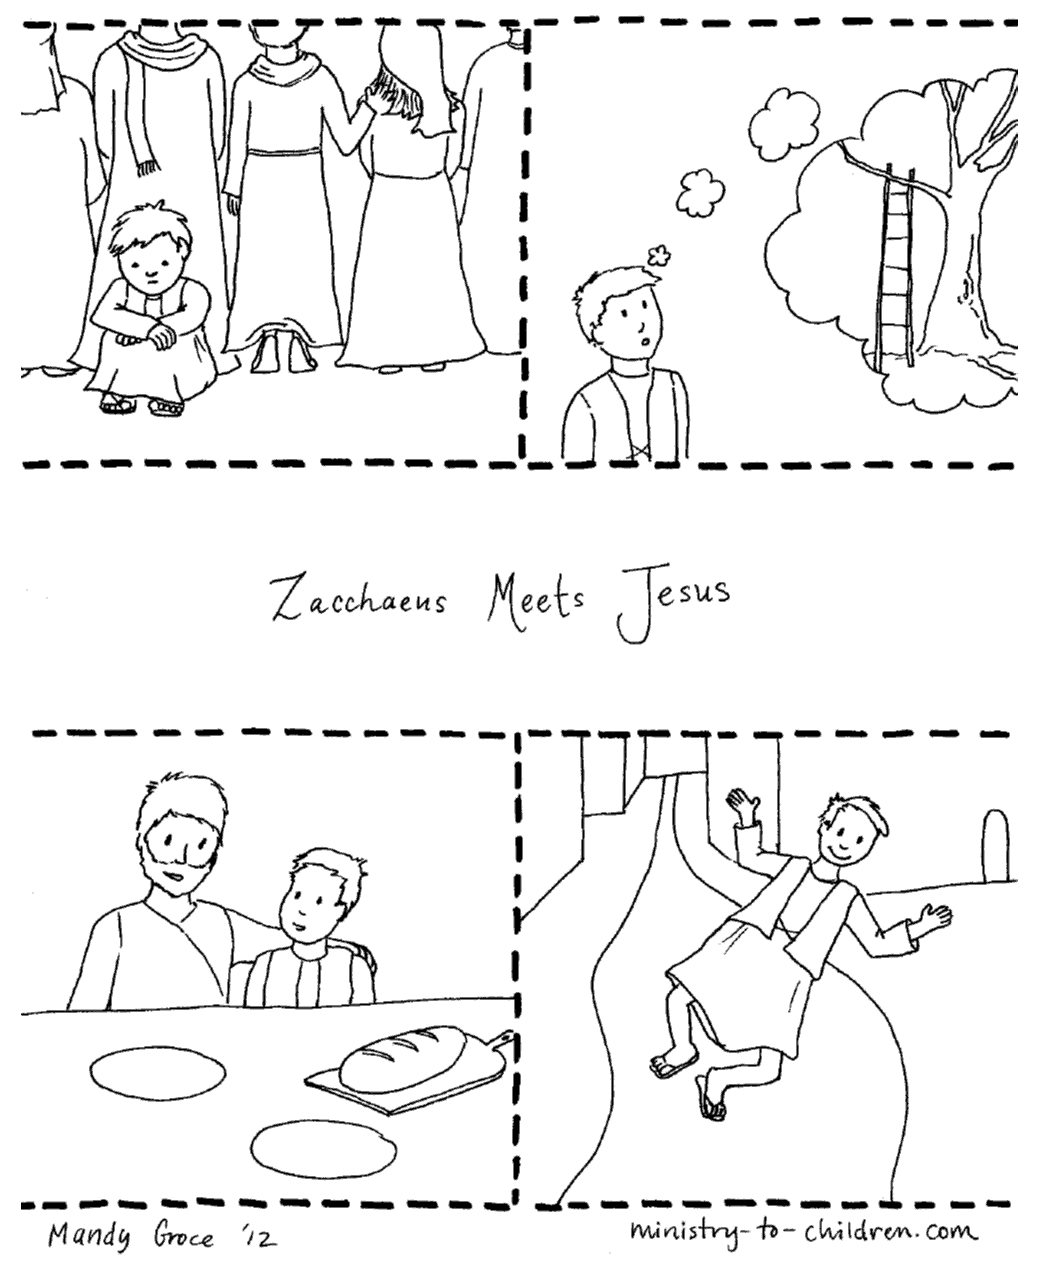 Free Printable Jesus Coloring Pages For Kids | 1270x1040